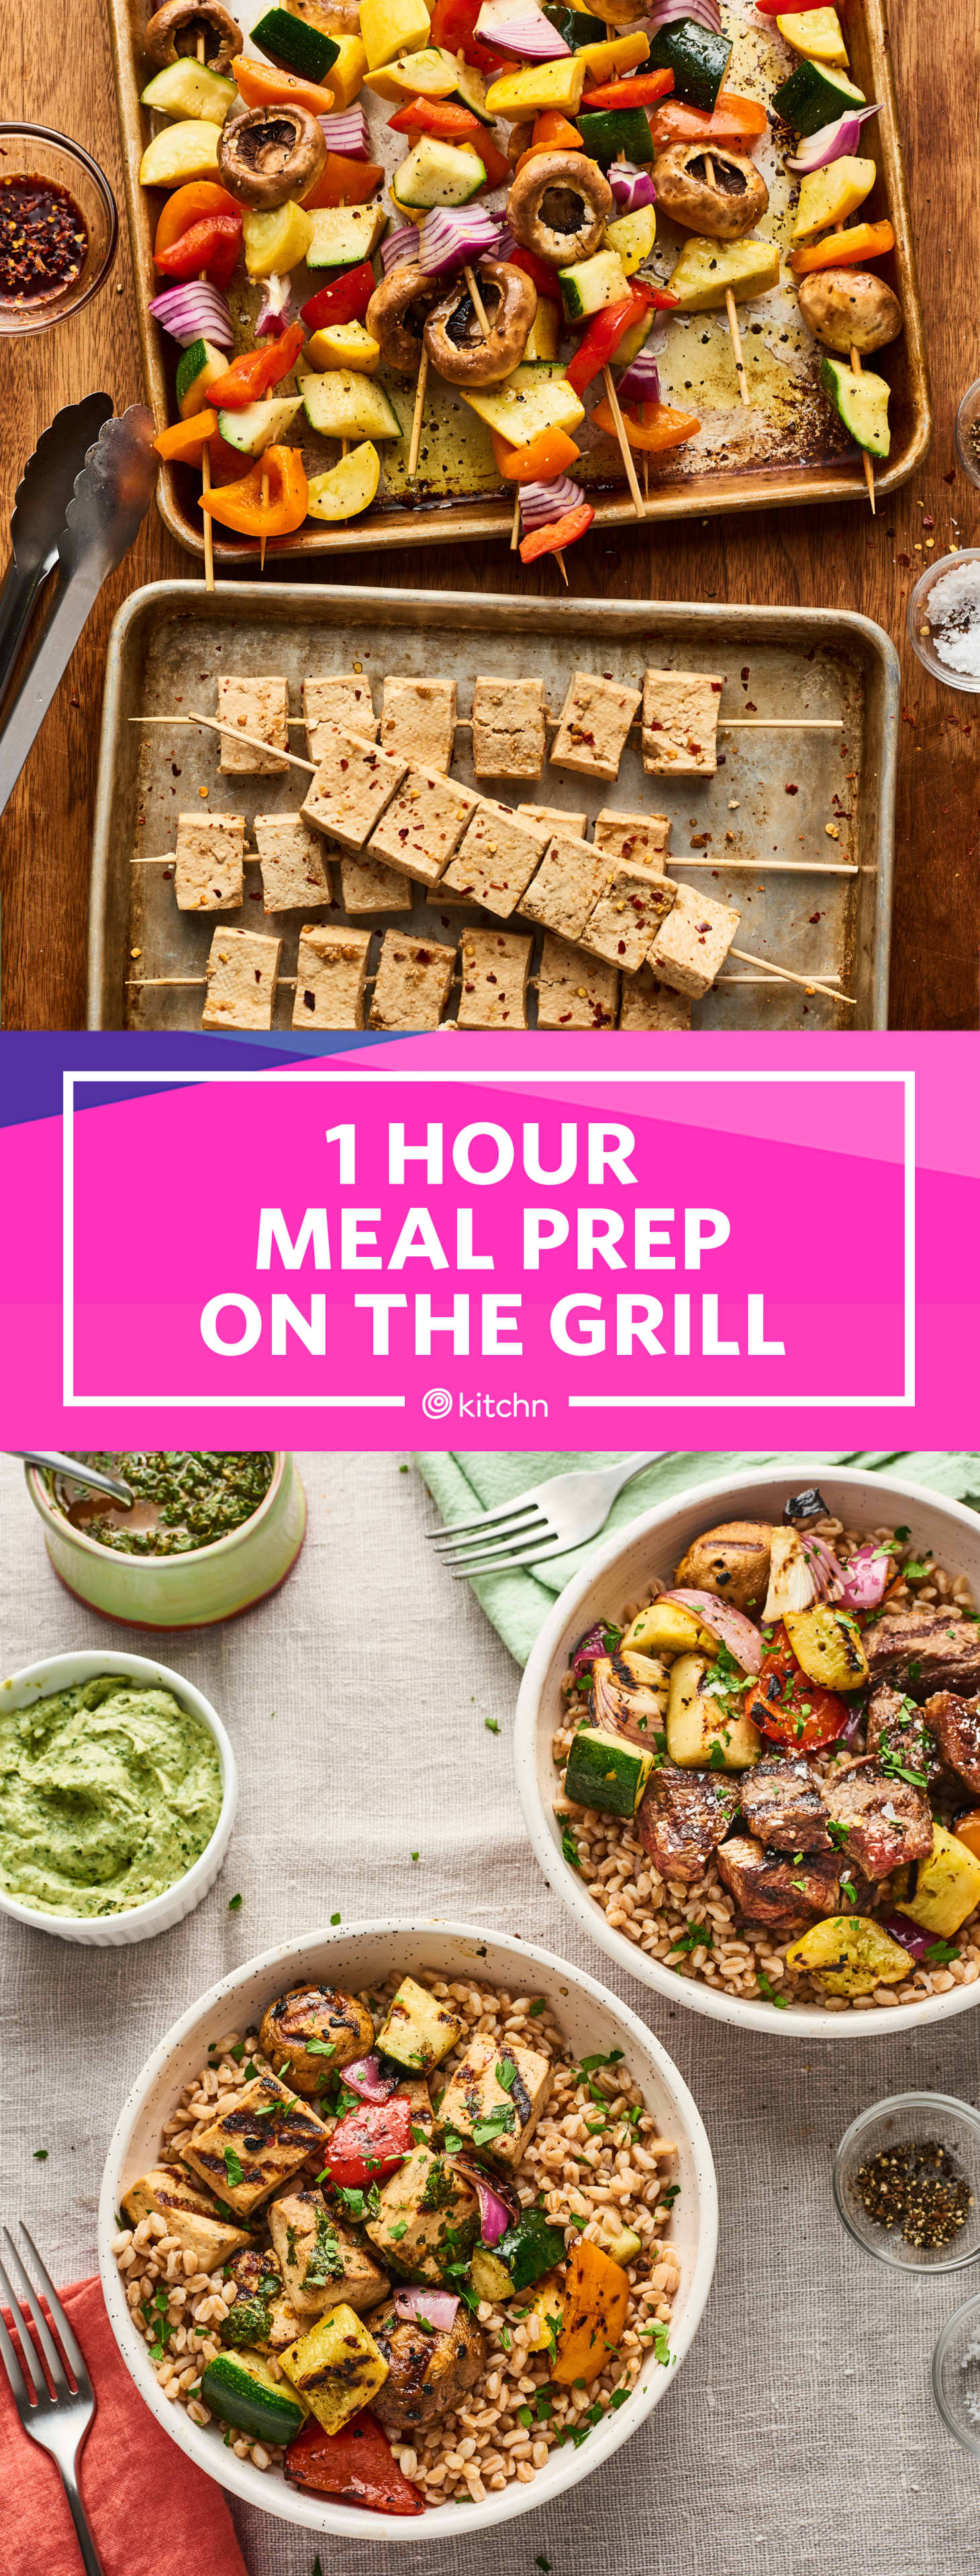 Prep for a Week of Meals on the Grill In 1 Hour | Kitchn